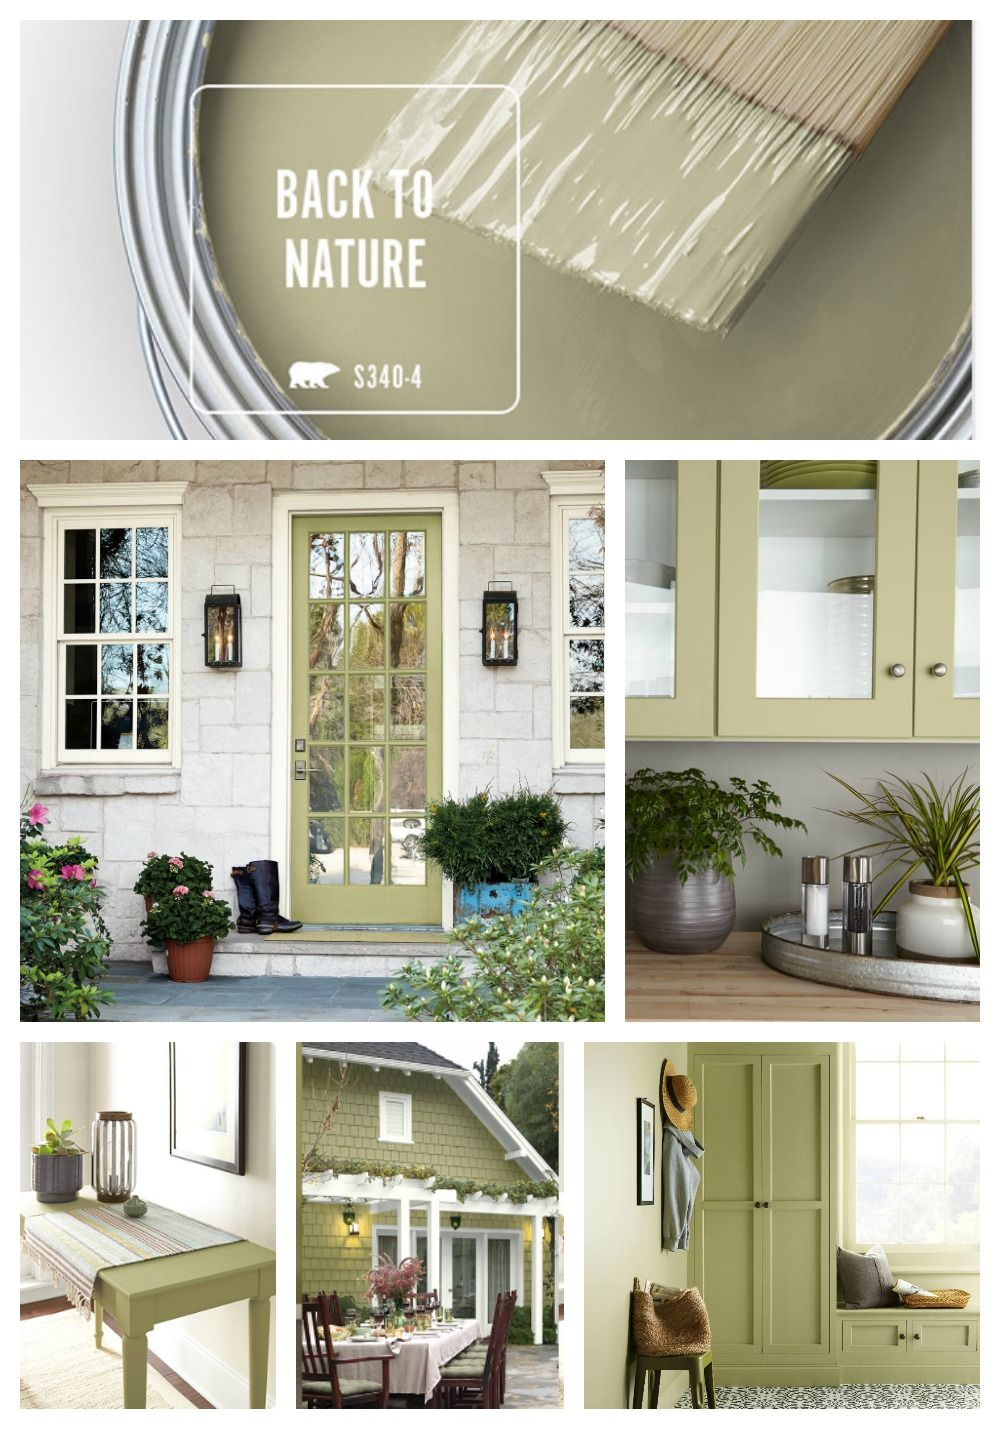 2020 Colors of the Year Exterior house colors, Family